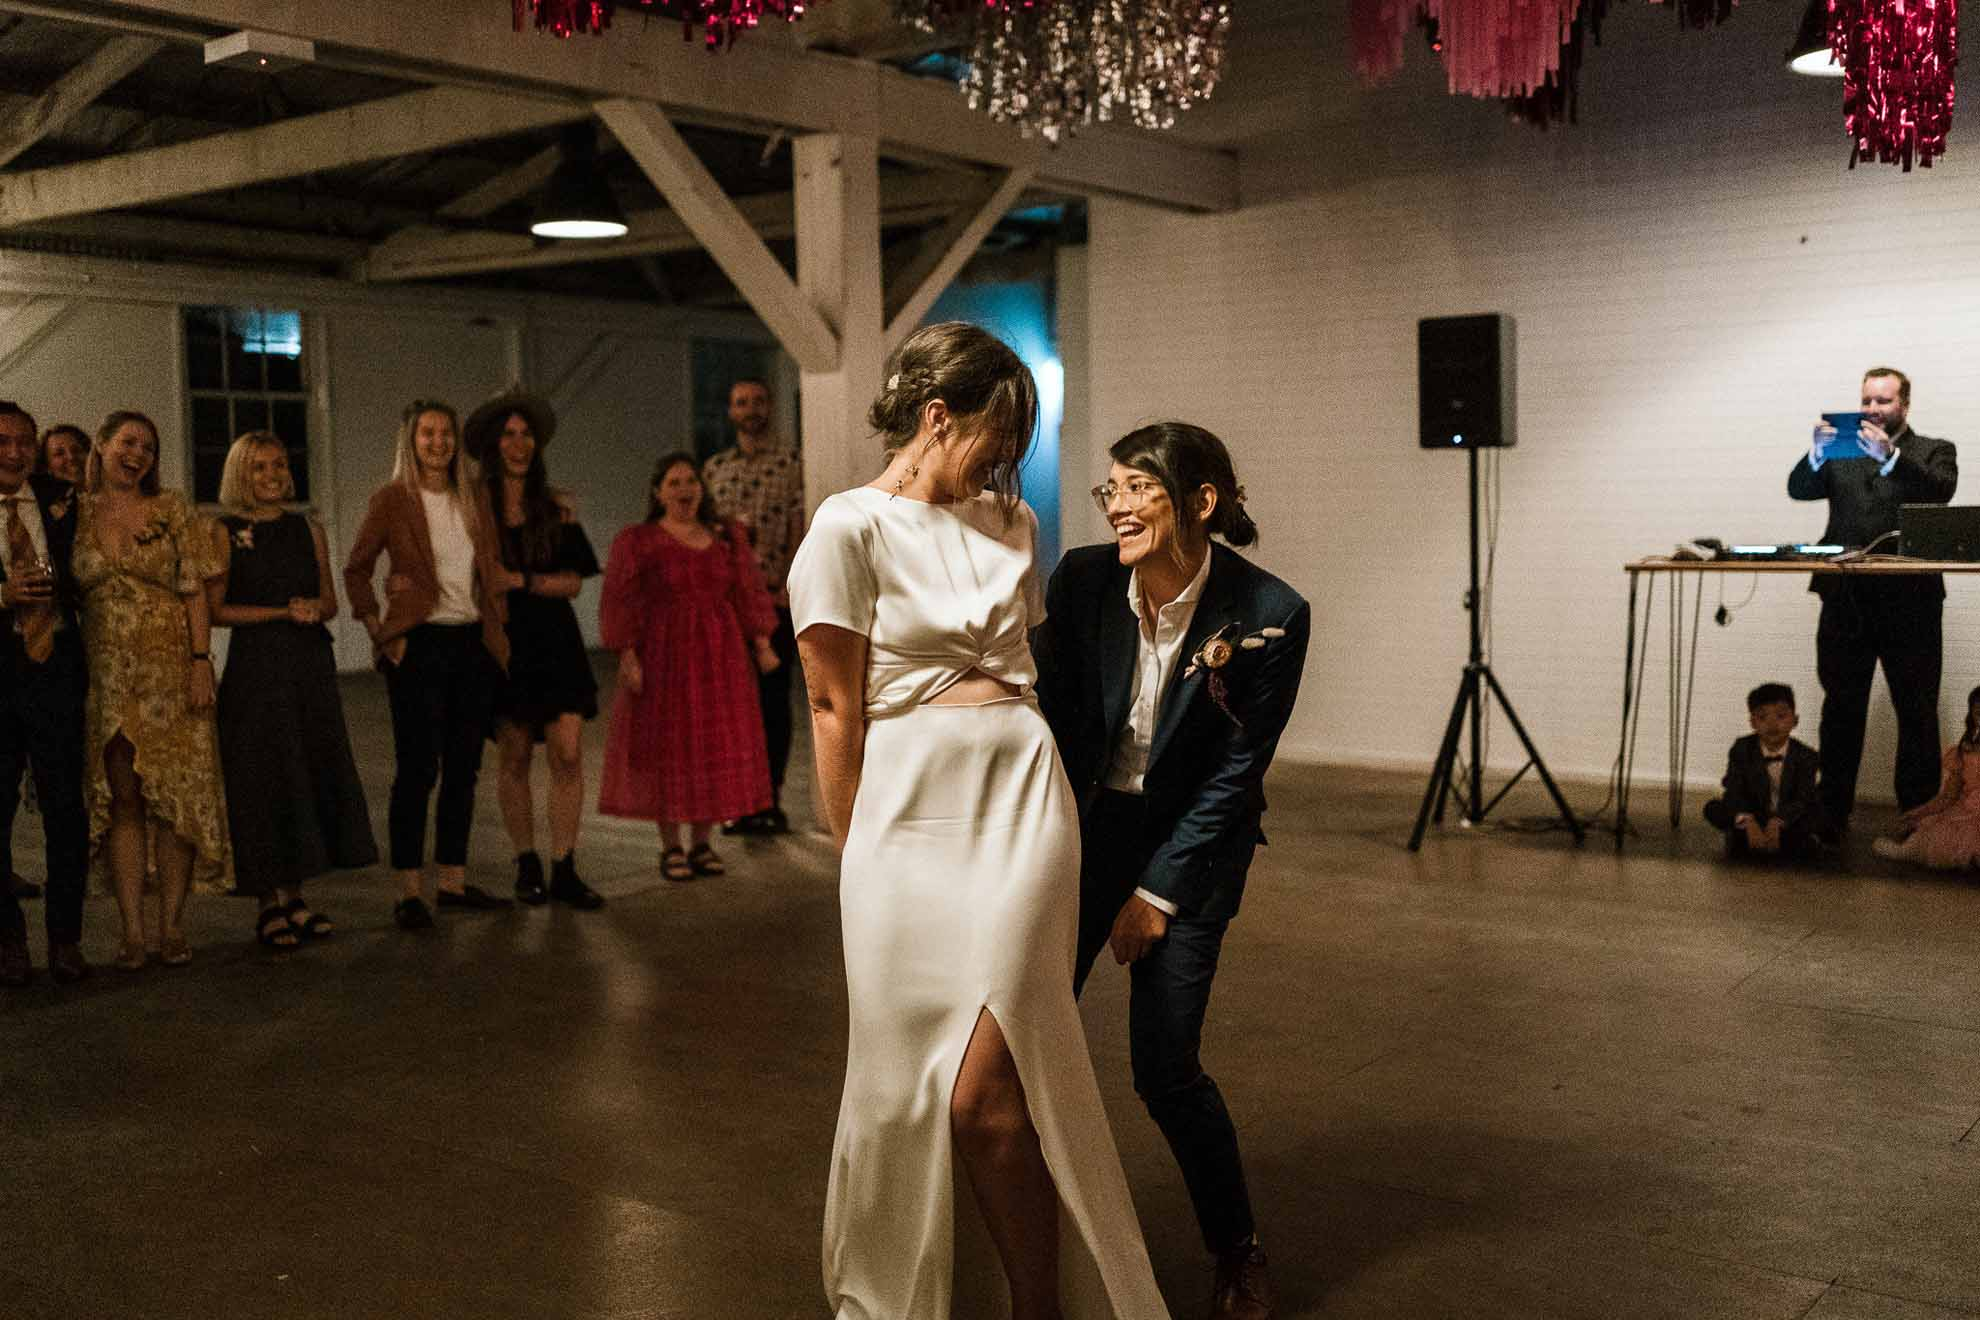 Gold-and-Grit-Photography Footscray Victoria lesbian gay queer LGBT+ couple covid wedding elopement Dancing With Her magazine